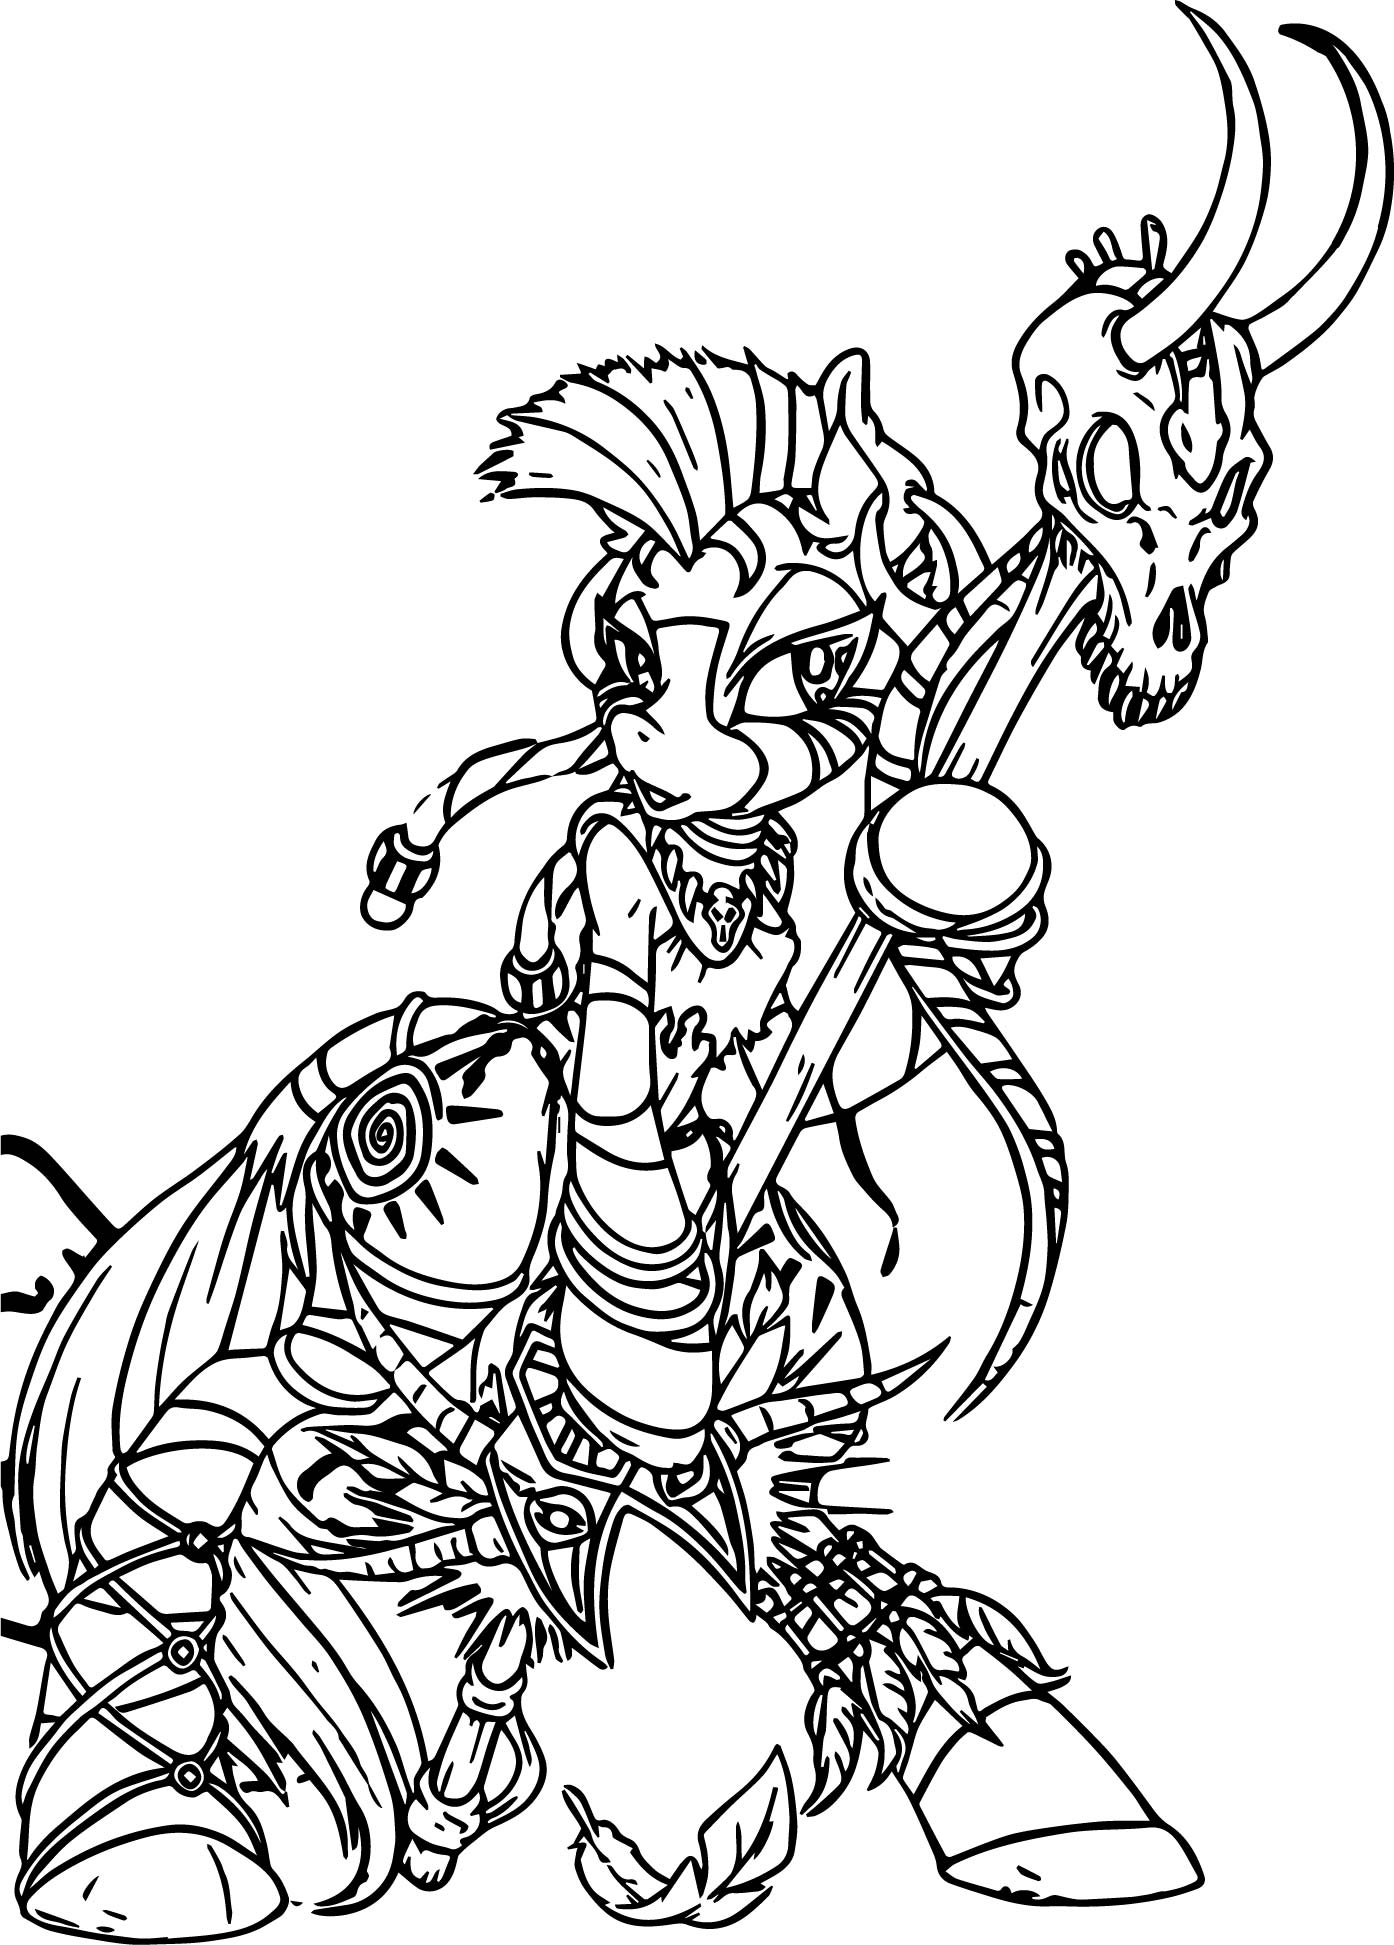 1394x1945 Zecora Witch Doctor Color Anime Apothecary Coloring Page